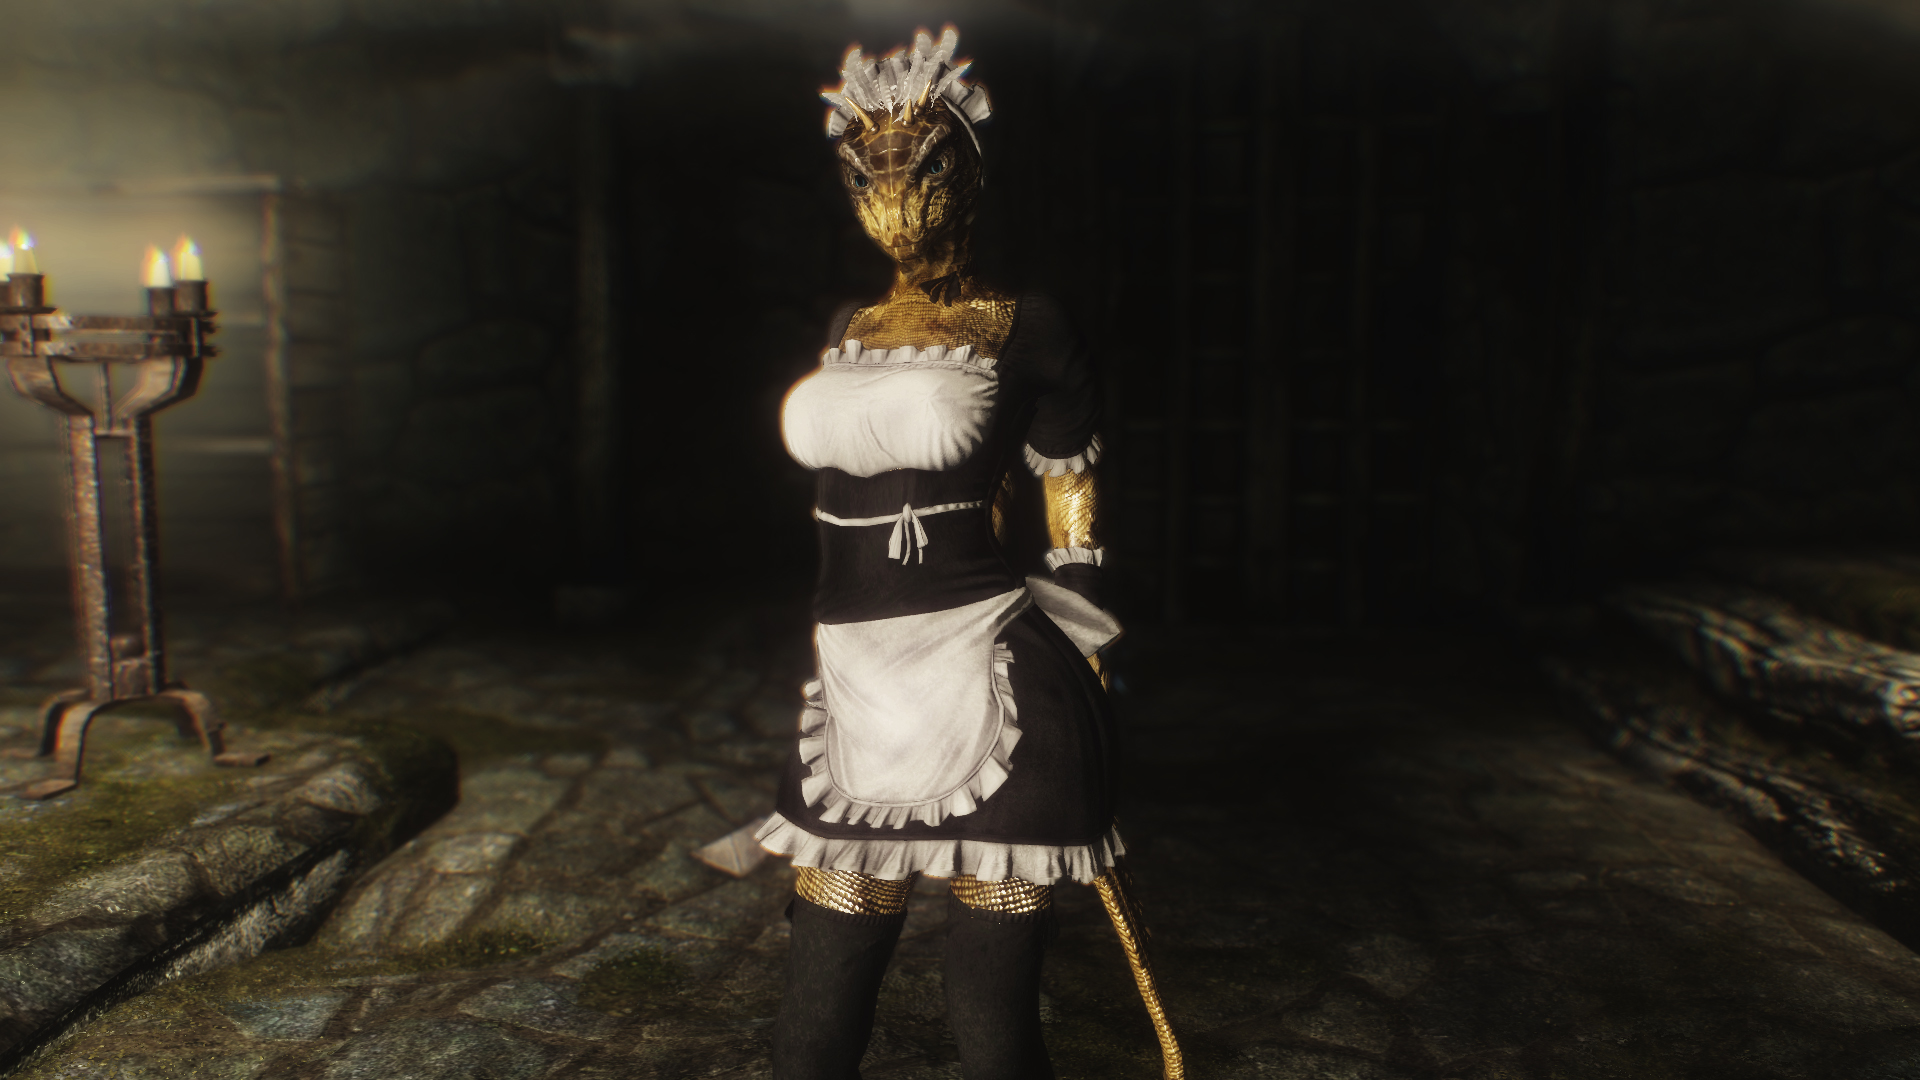 Proposalpoll French Maid Outfit To Be Added To The Crown Store Or